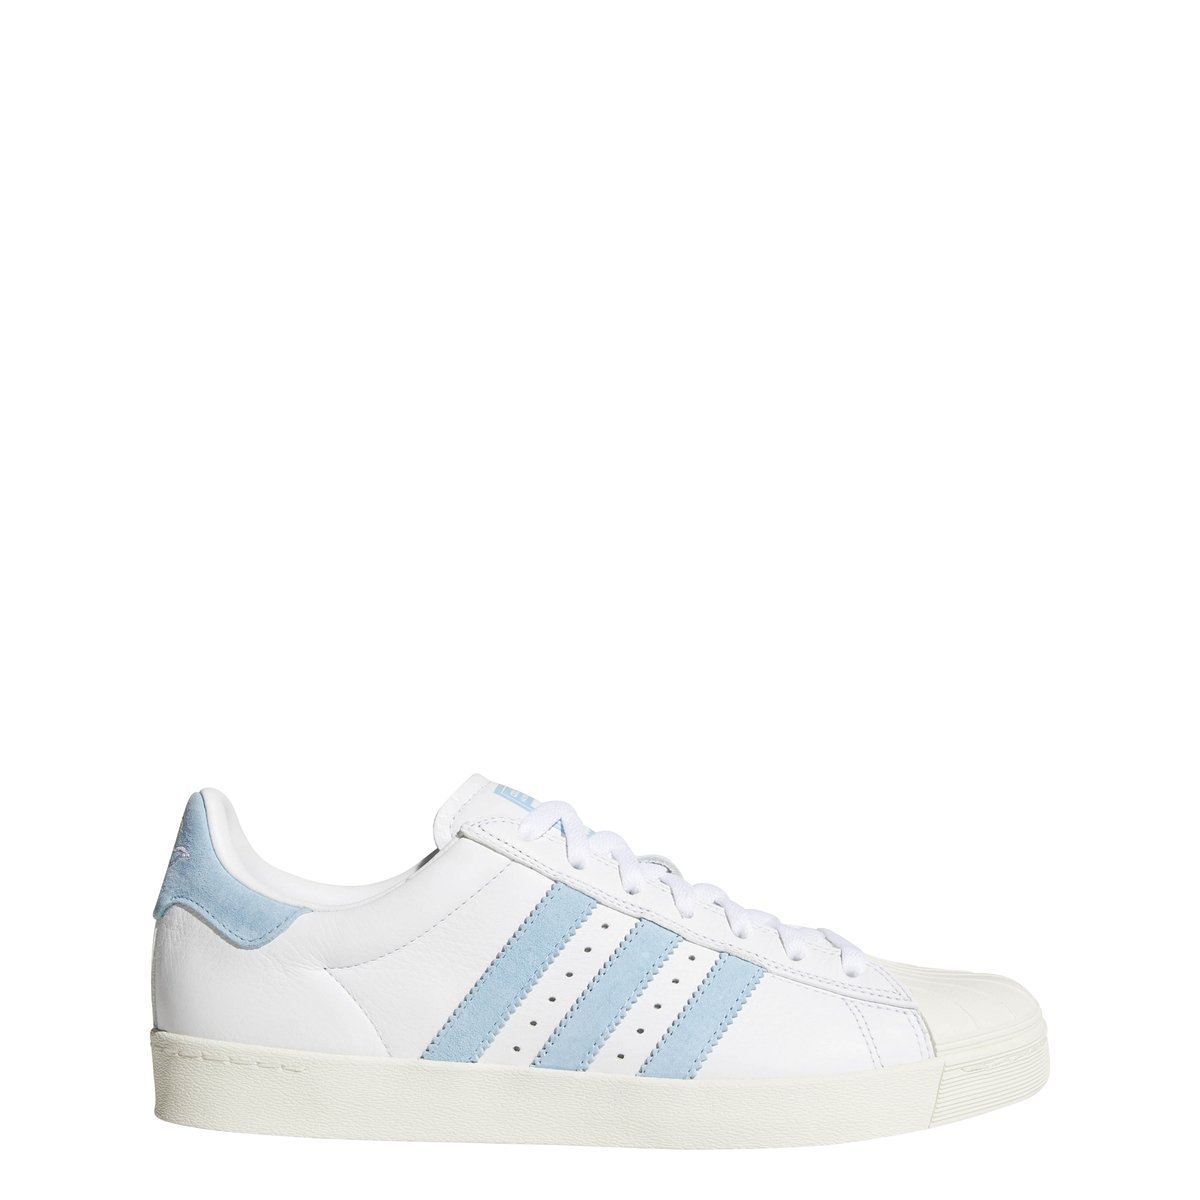 adidas Originals Men's Superstar Vulc Adv Shoes 8.5 D(M) US|Ftwwht/Custom/Cwhite